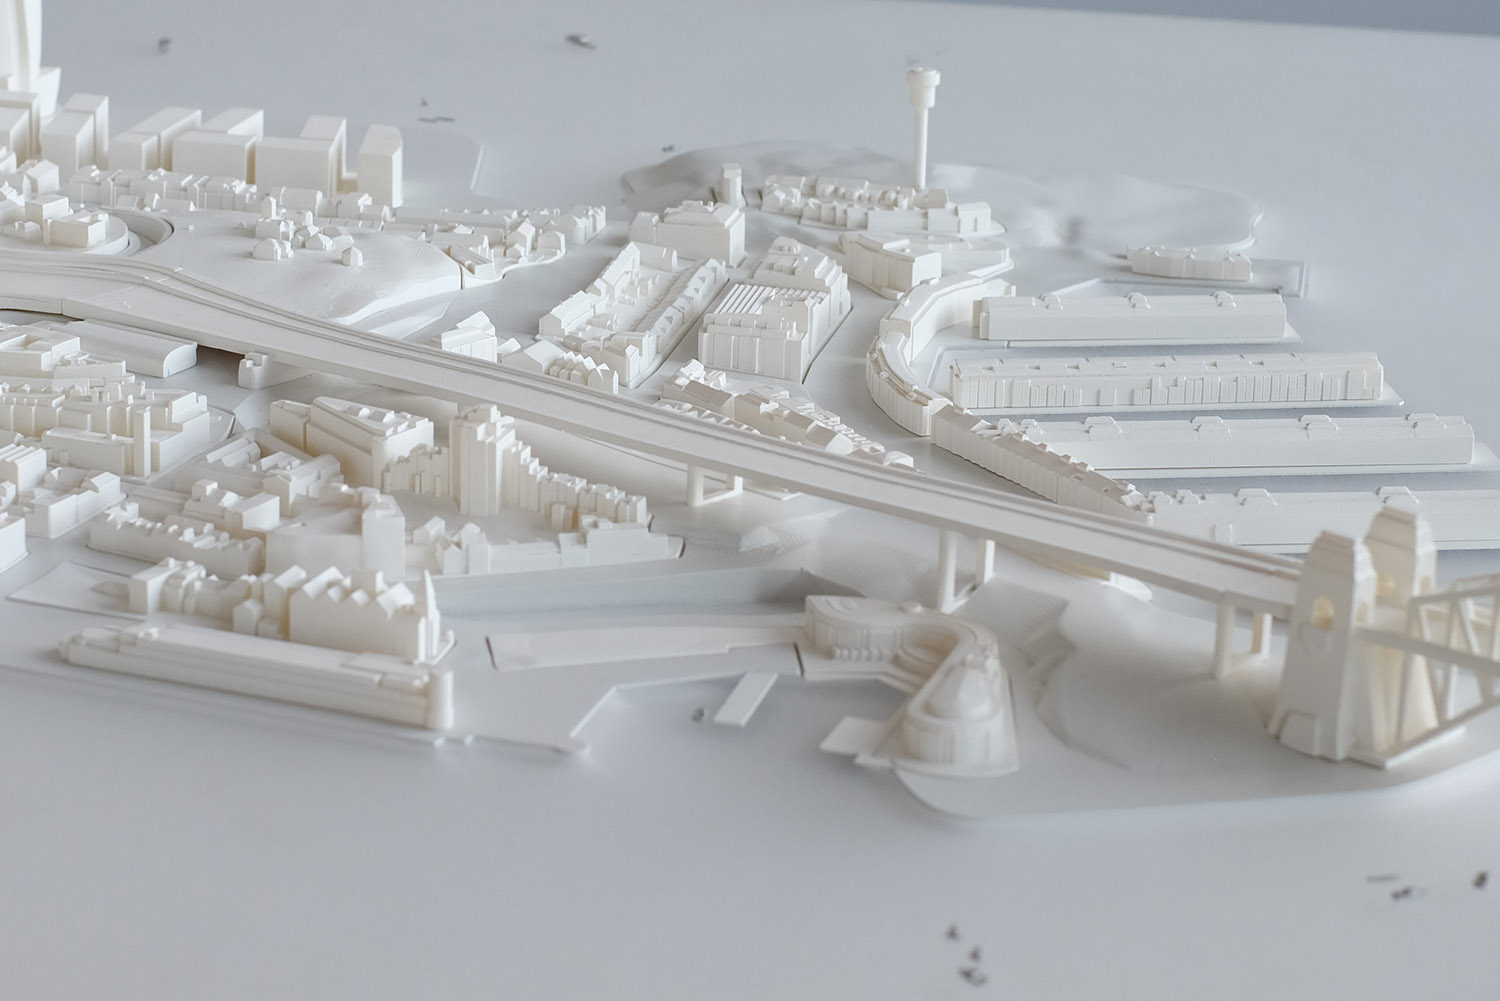 Masterplan model for City of Sydney